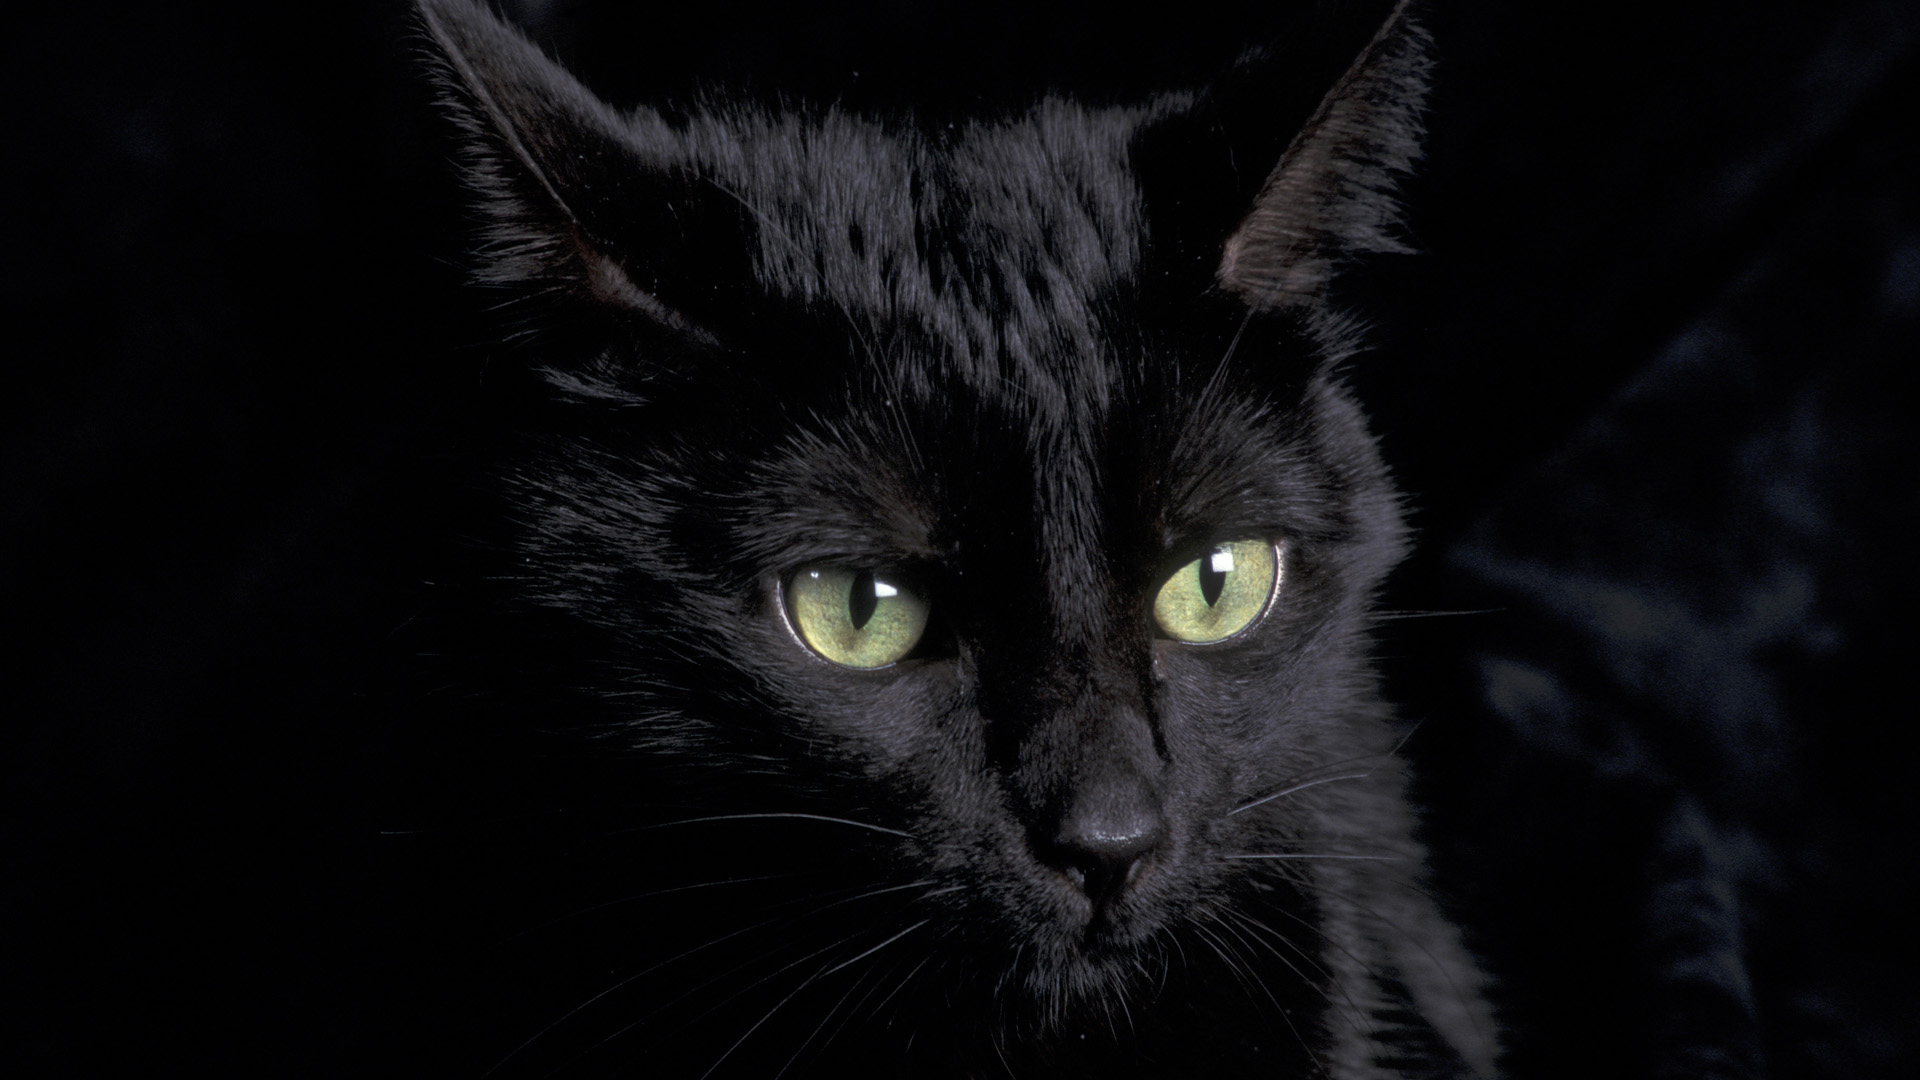 Black Cat Face Drawing 21141 Hd Wallpaper Backgrounds Download